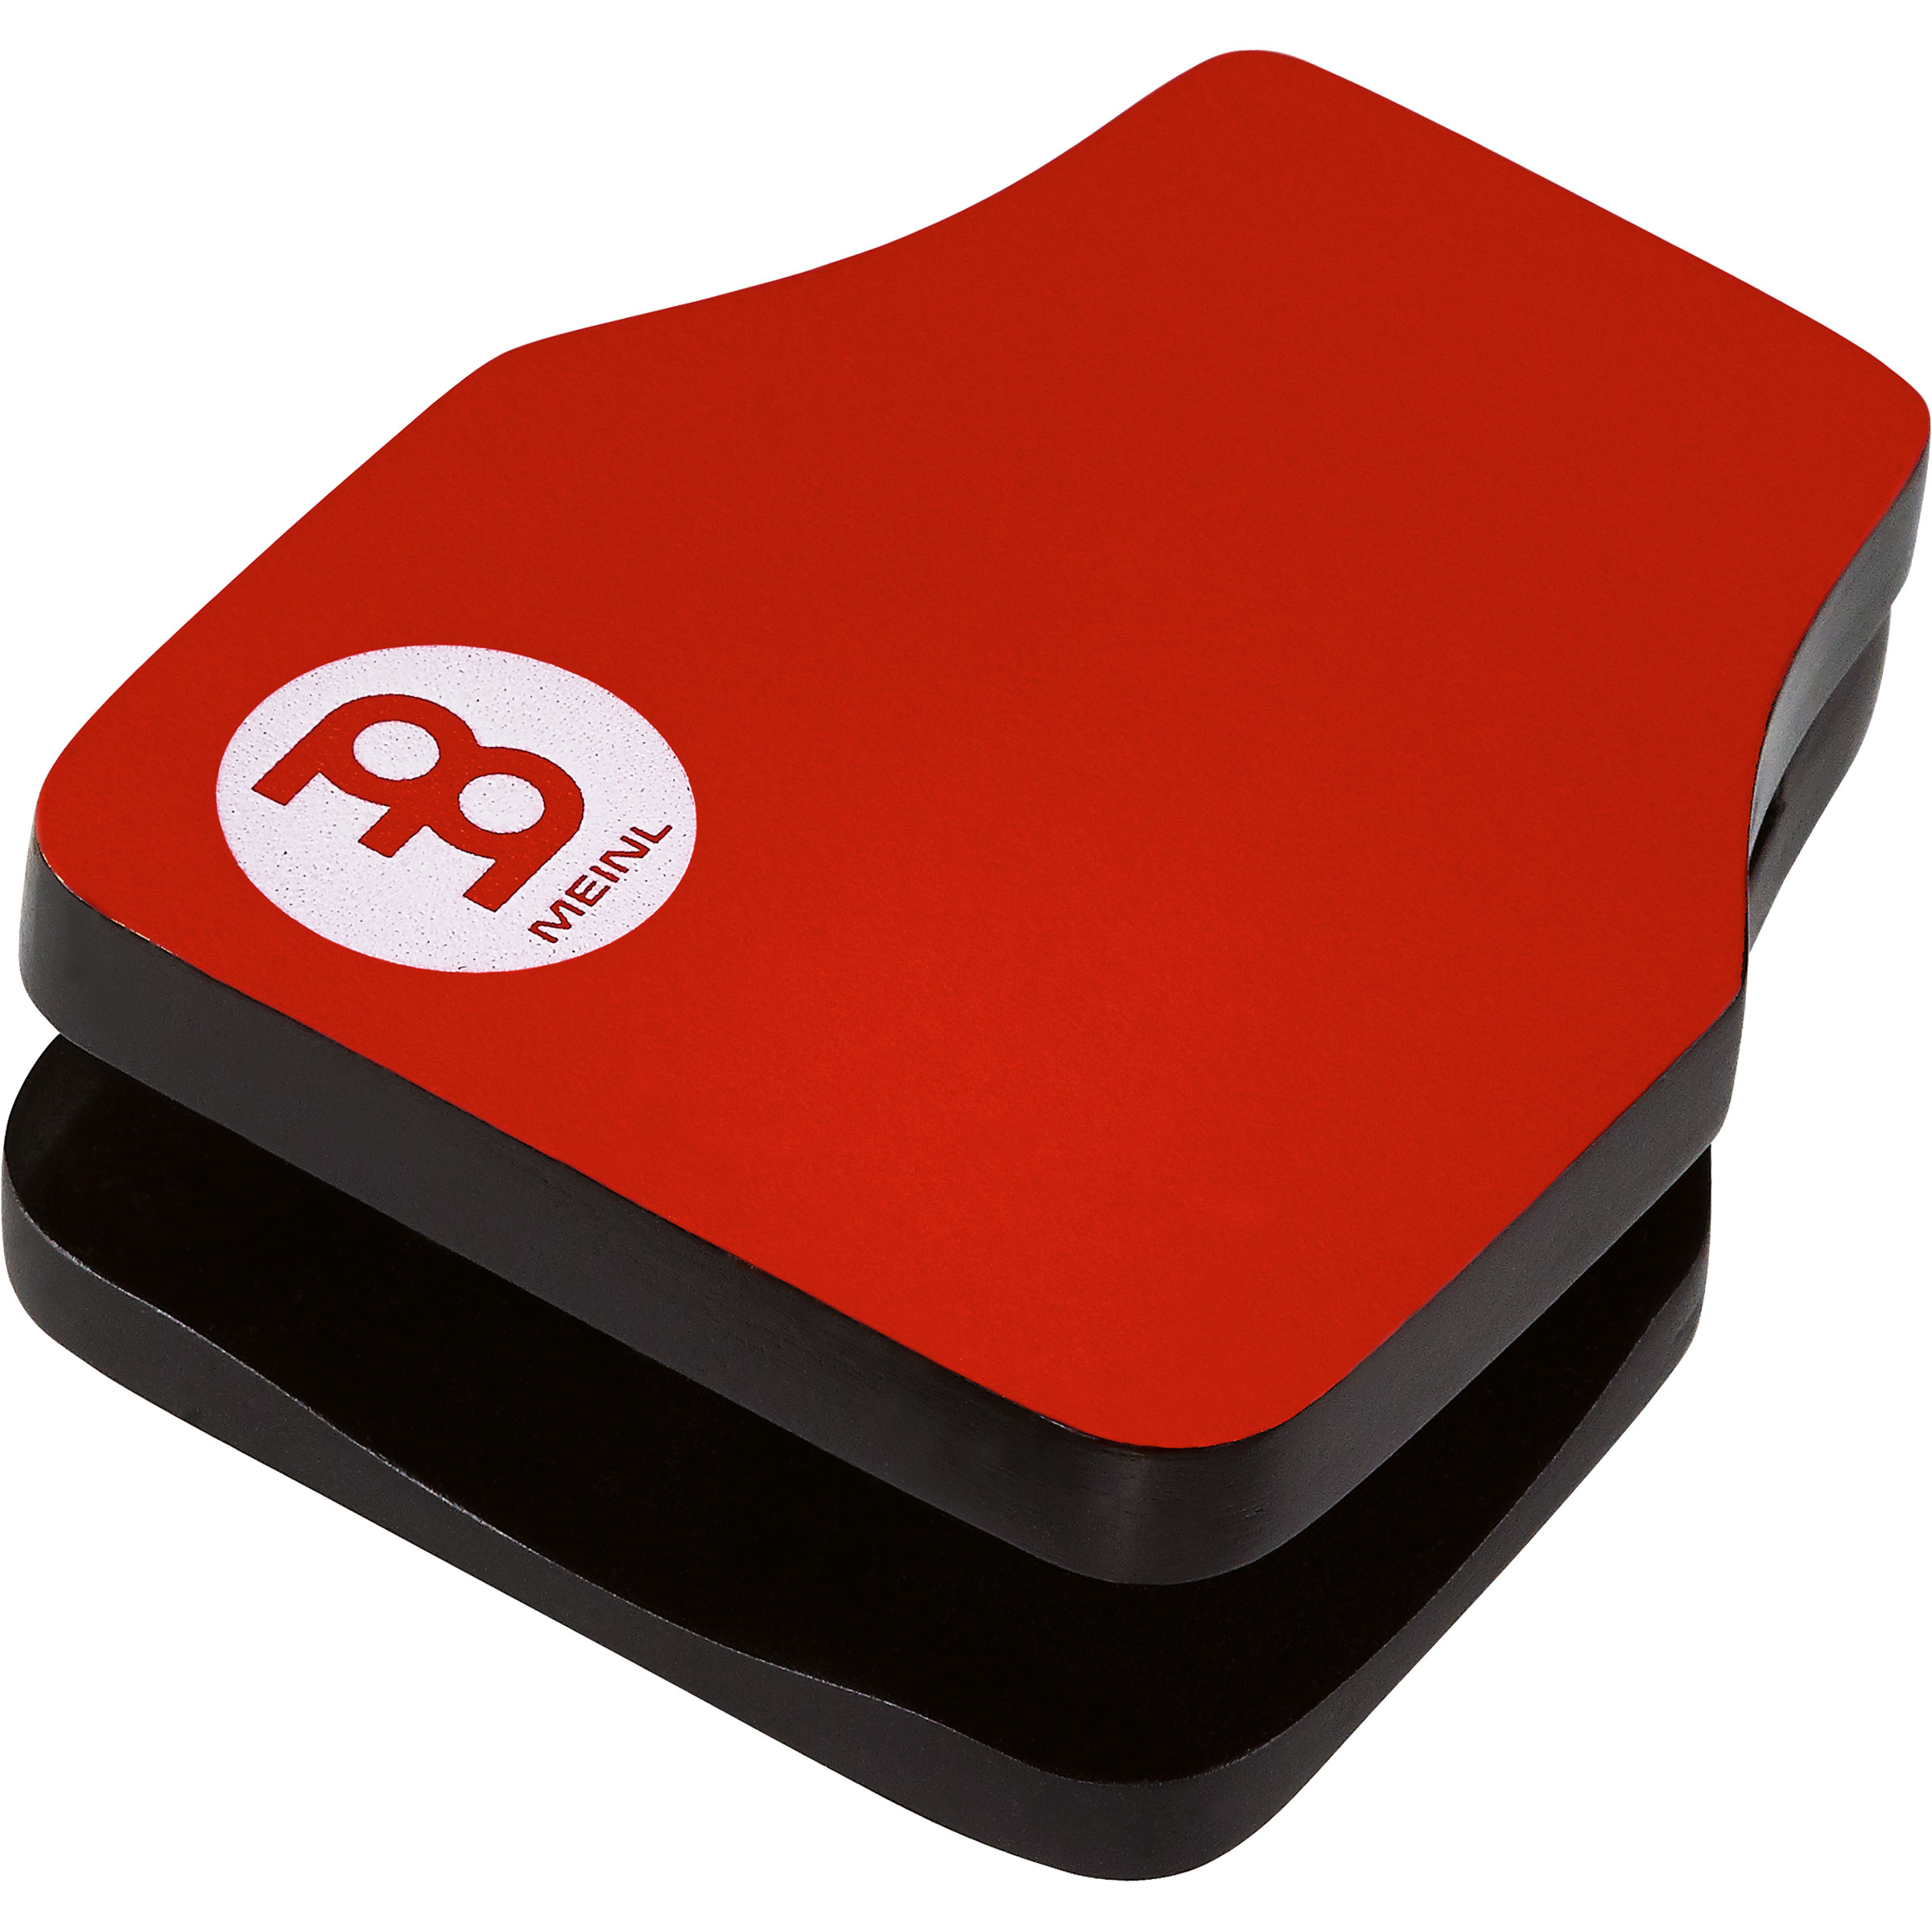 Meinl Slap Shake Two-in-One Shaker/Castanet